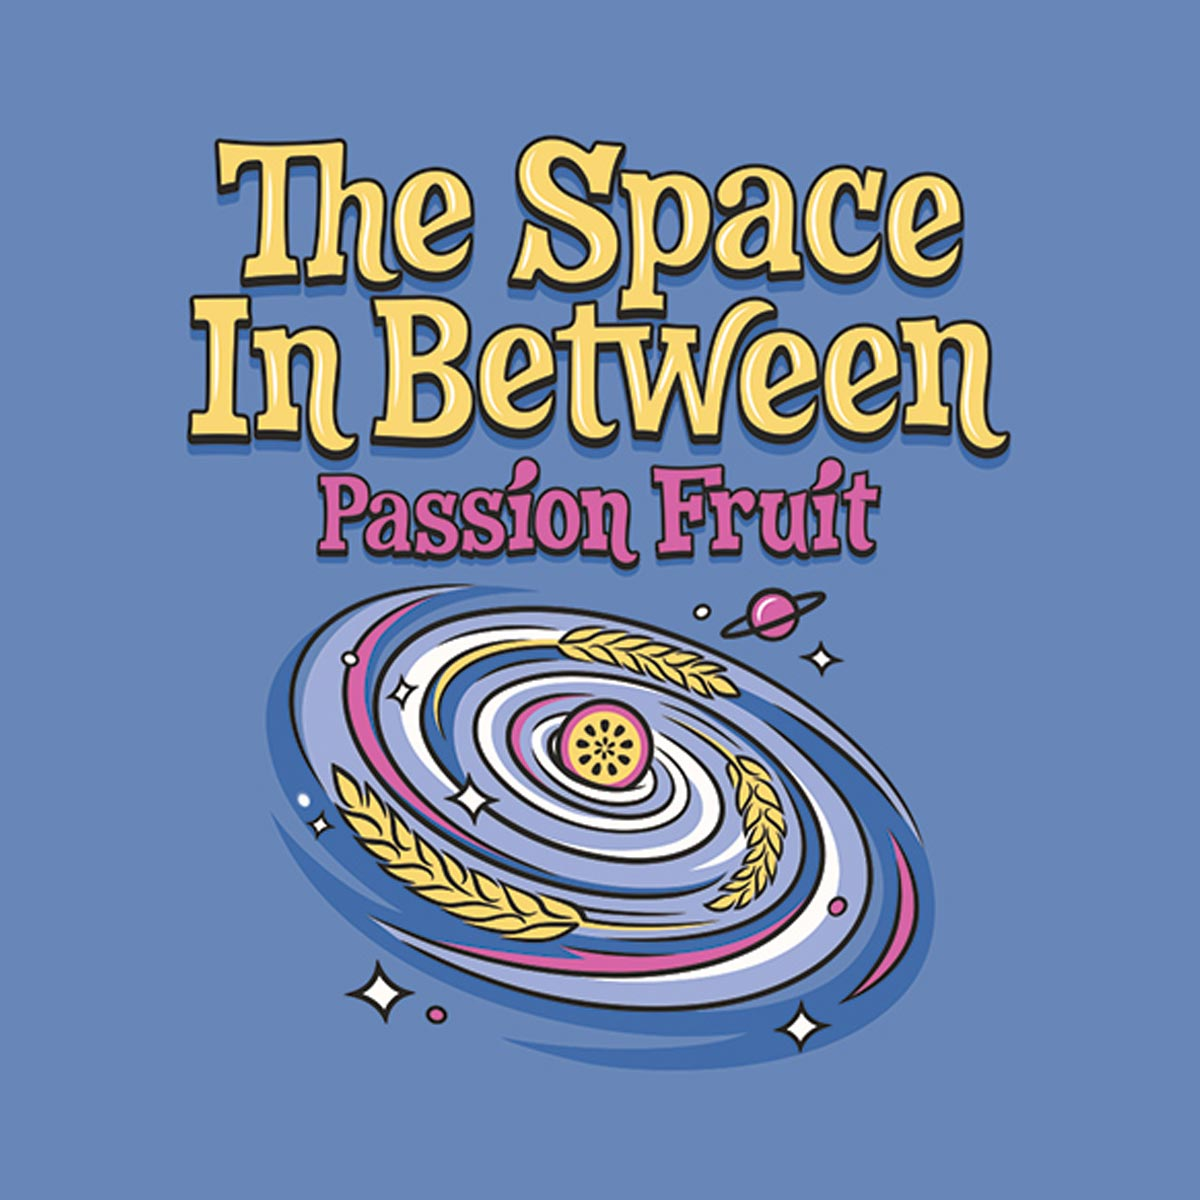 The Space In Between with Passion Fruit